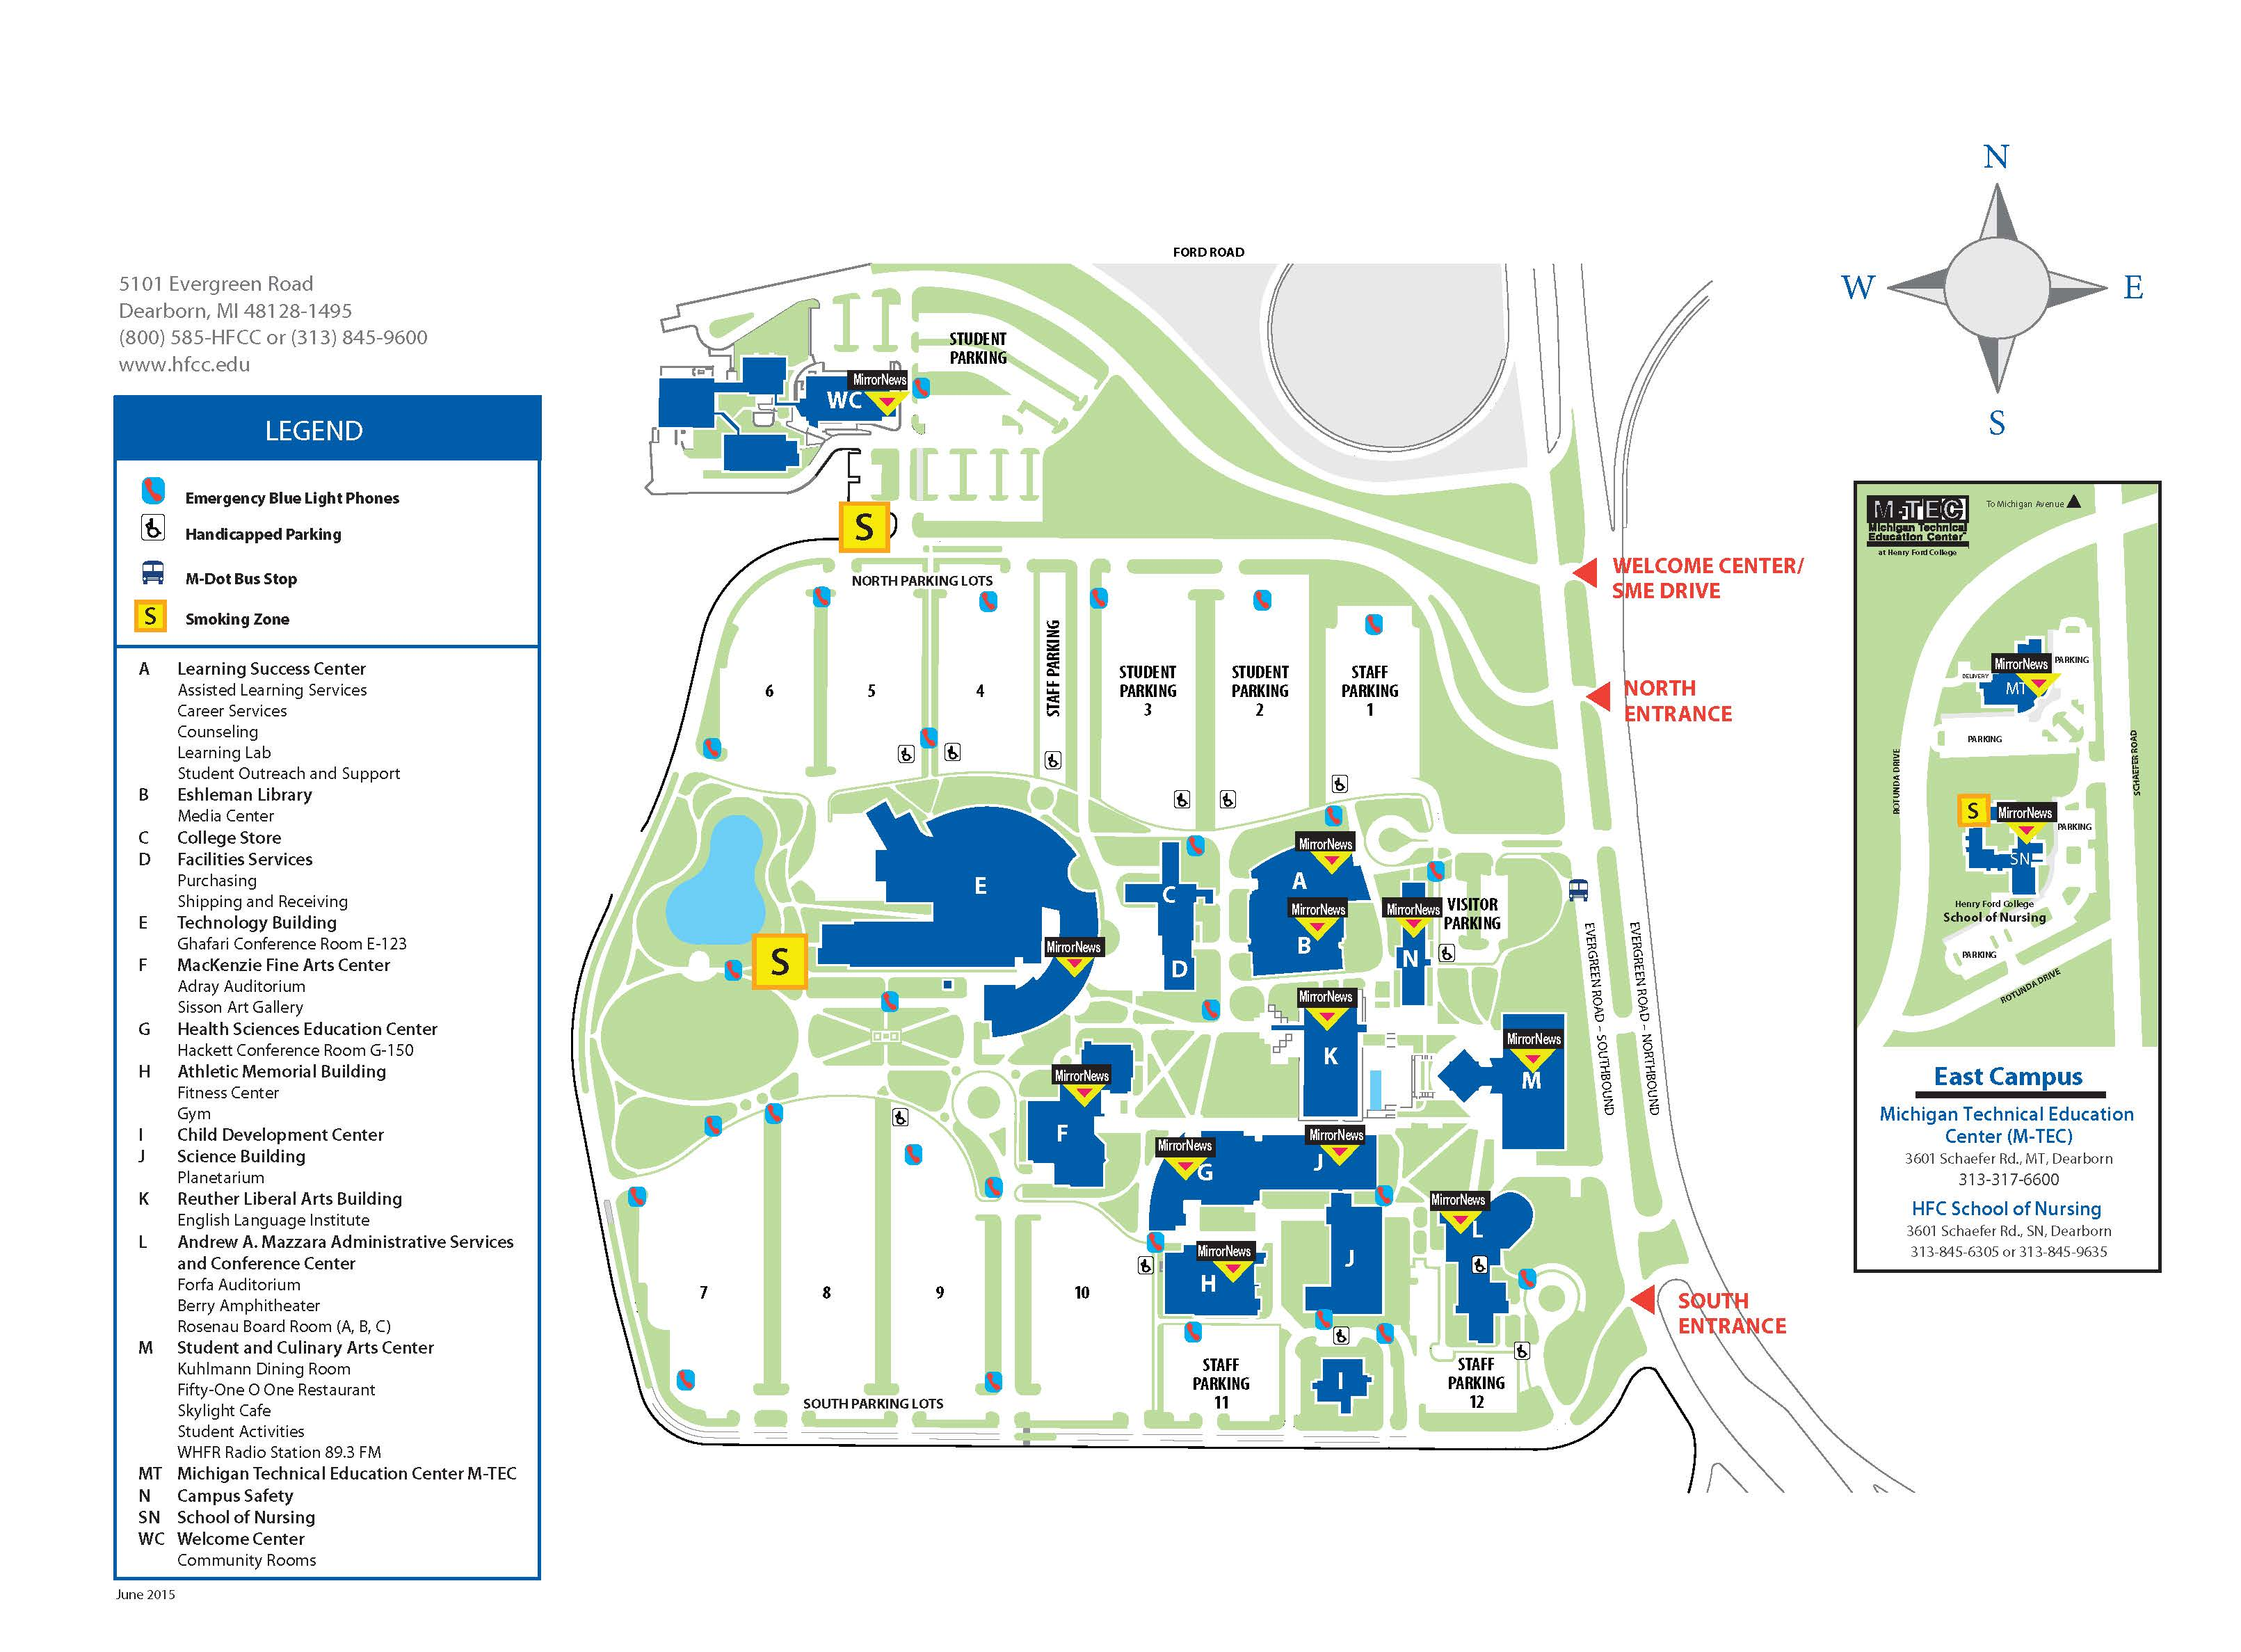 ford dearborn campus map About Us Mirror News ford dearborn campus map